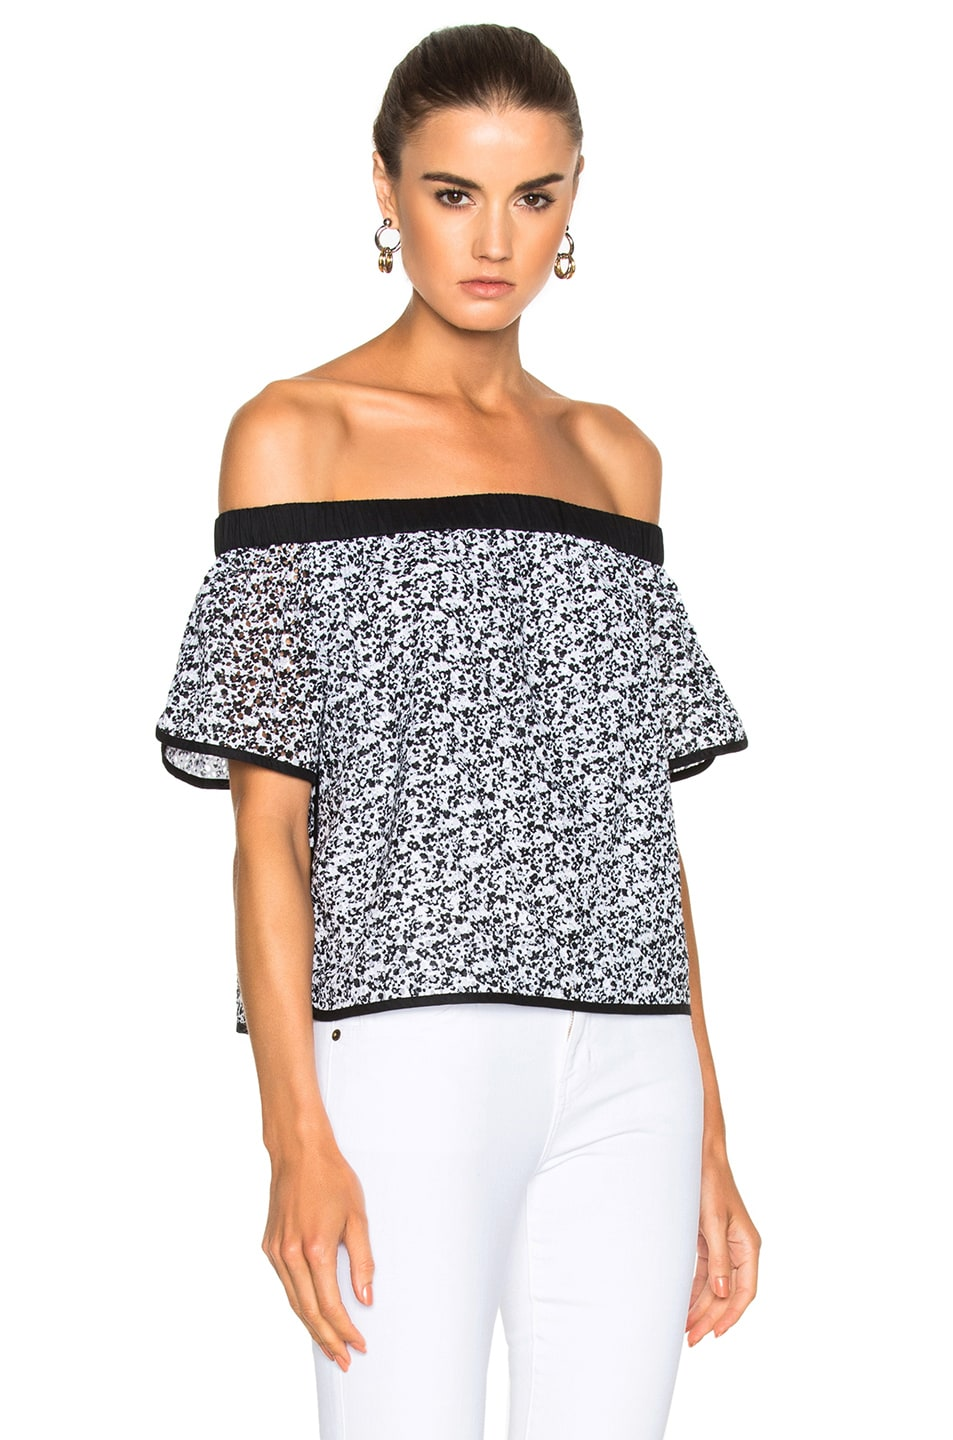 Image 1 of Rag & Bone Flavia Top in Black Floral